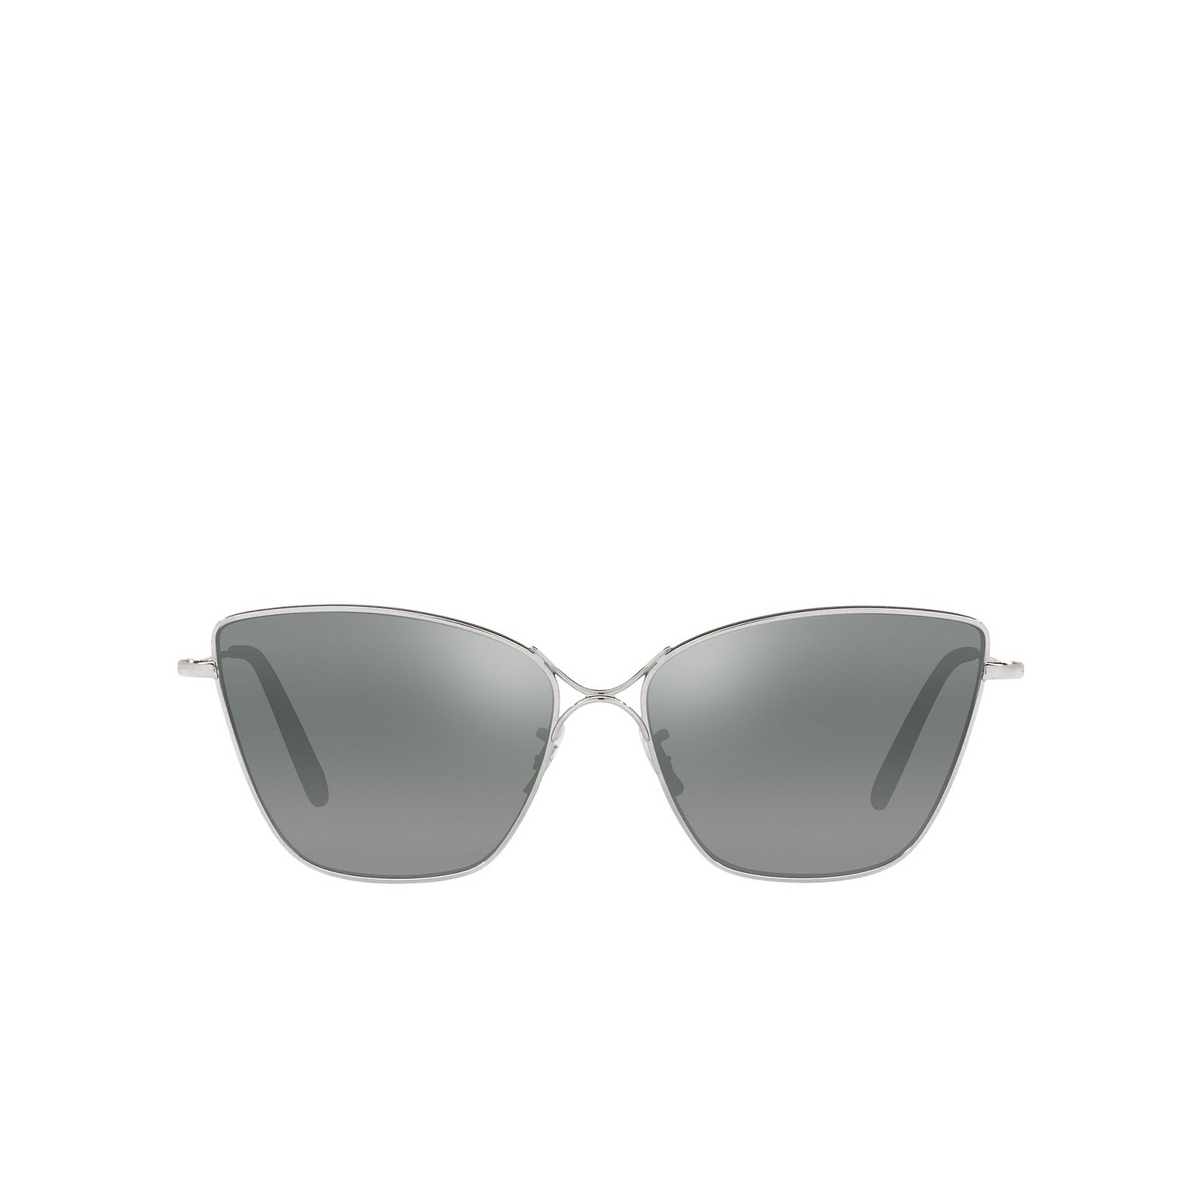 Oliver Peoples® Butterfly Sunglasses: Marlyse OV1288S color Silver 50366I - front view.